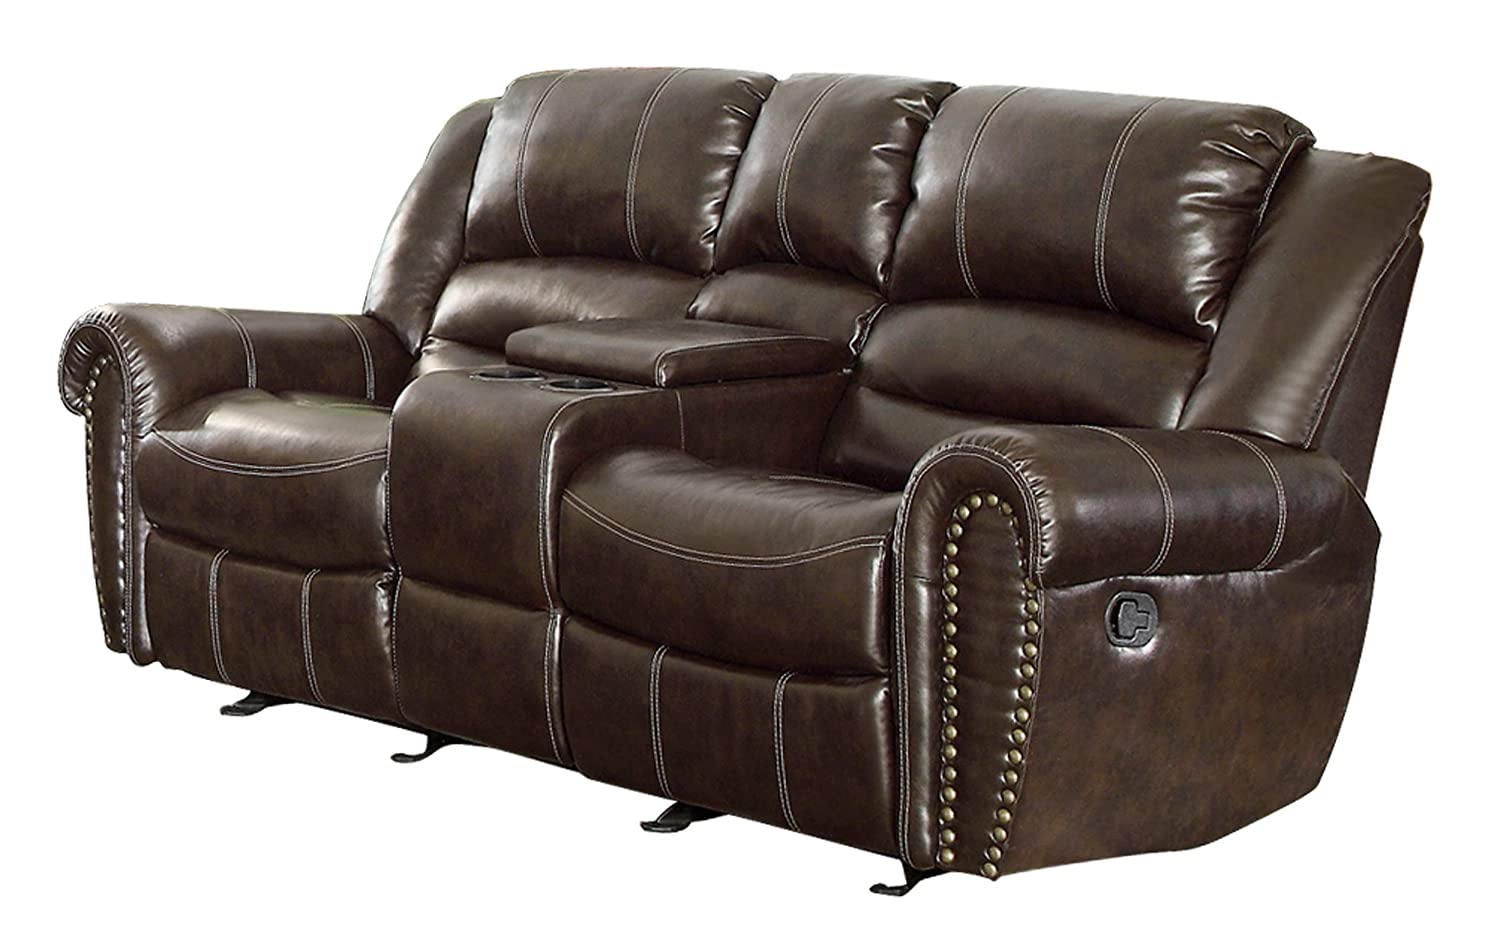 Loveseat Recliner, Loveseat Recliners, Best Loveseat Recliner, Best  Loveseat Recliners, Loveseat Recliner